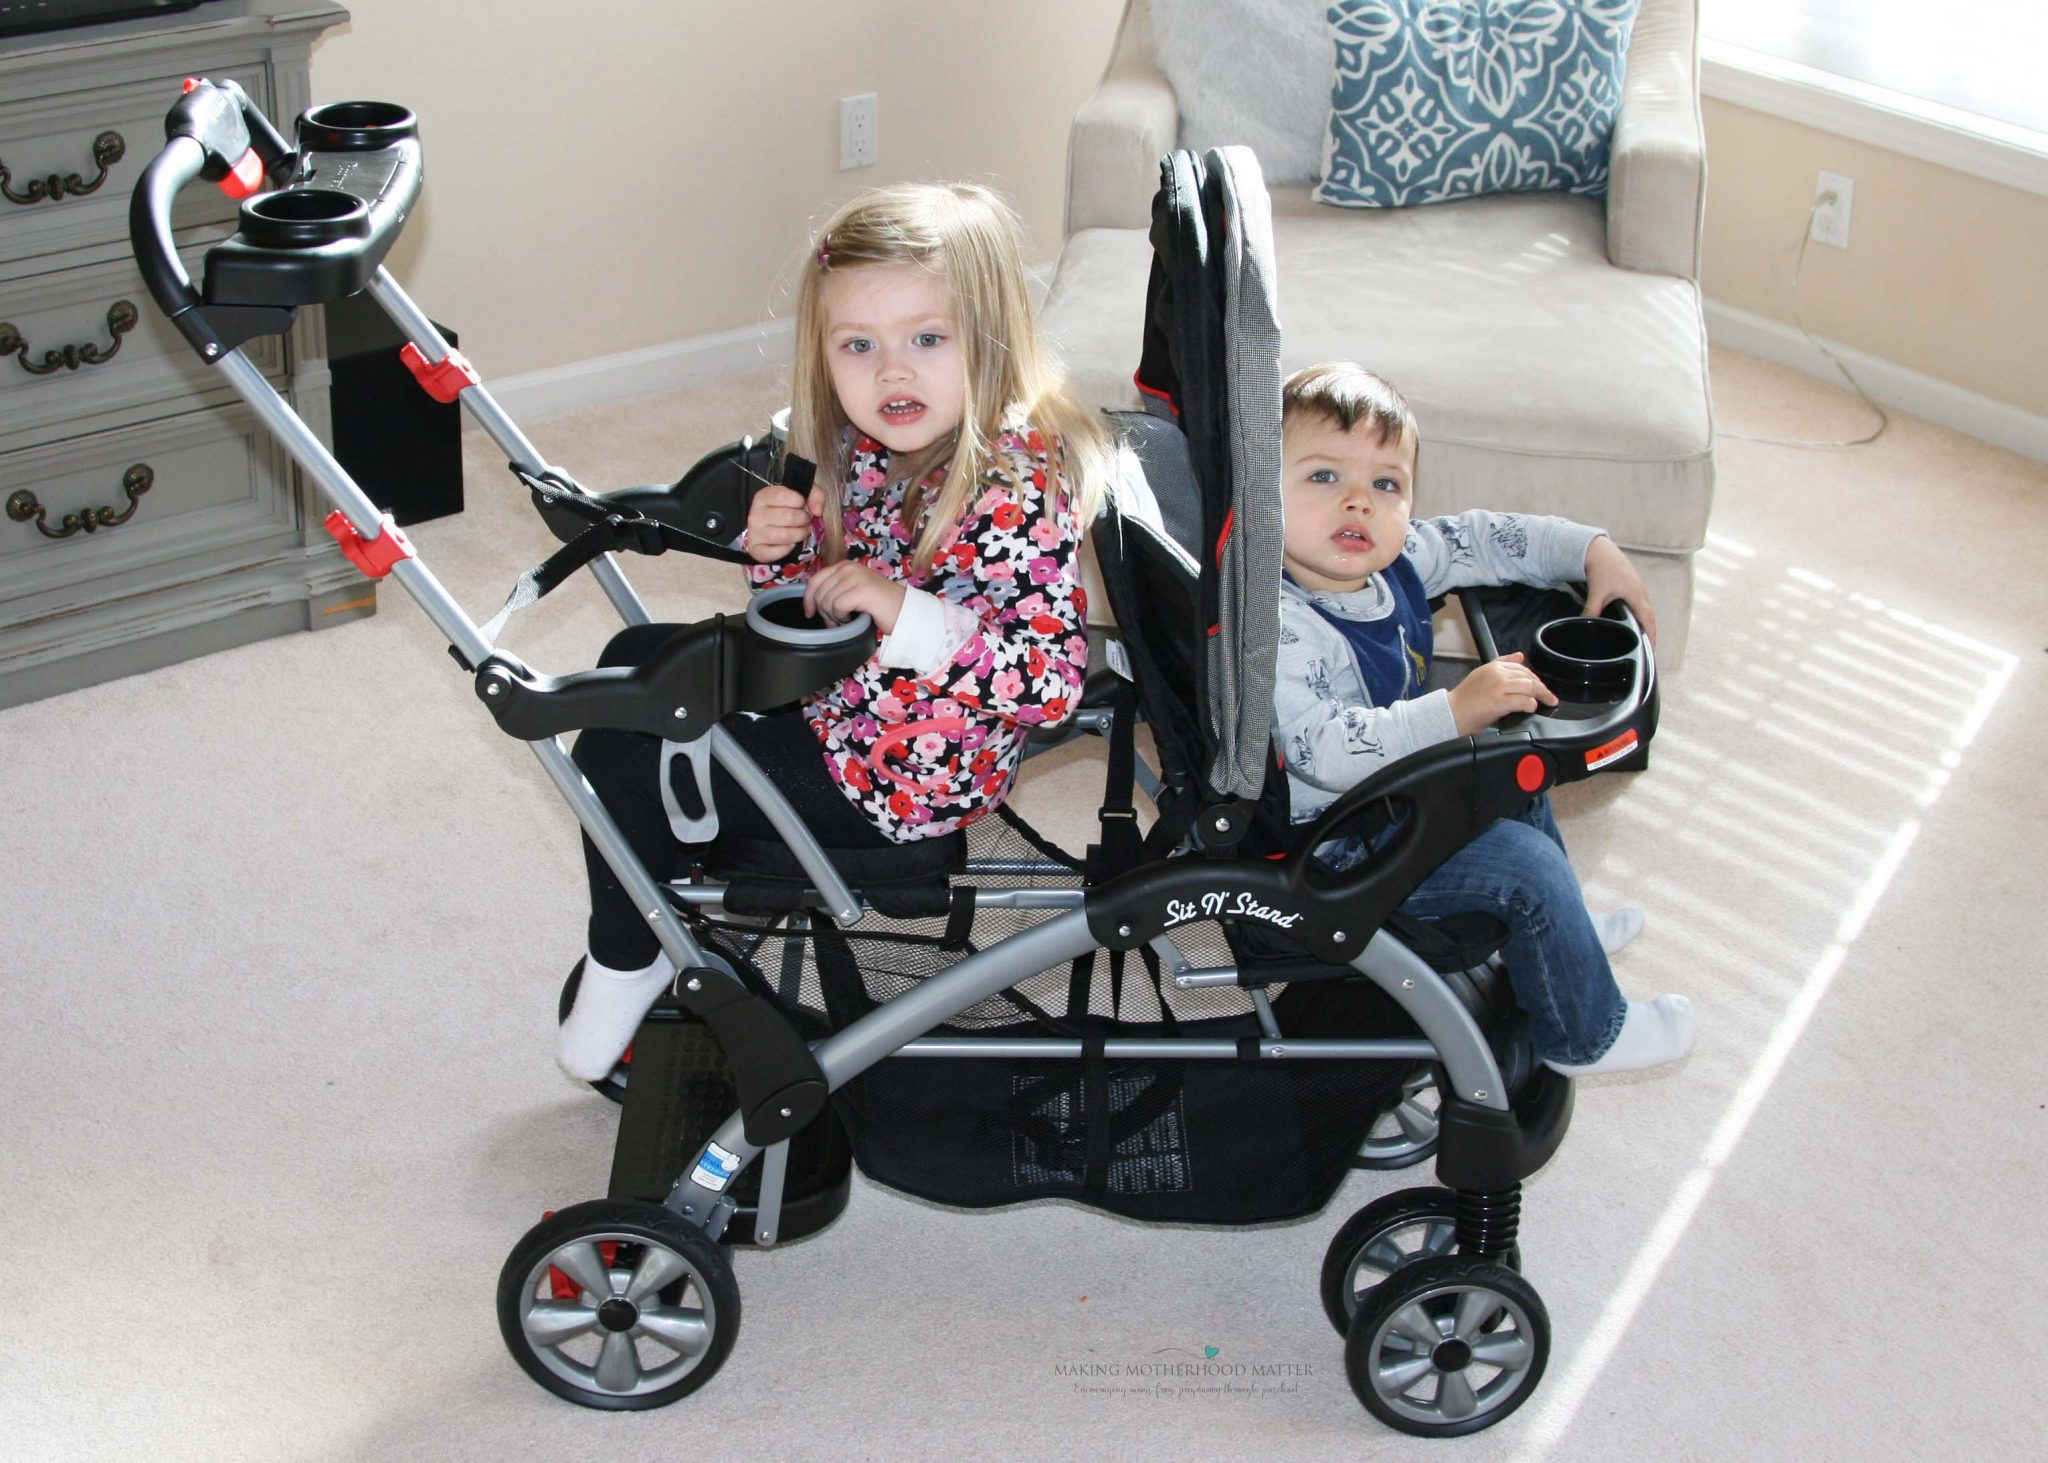 Best Tandem Lightweight Stroller The Best Lightweight Double Stroller Comparison For Toddlers